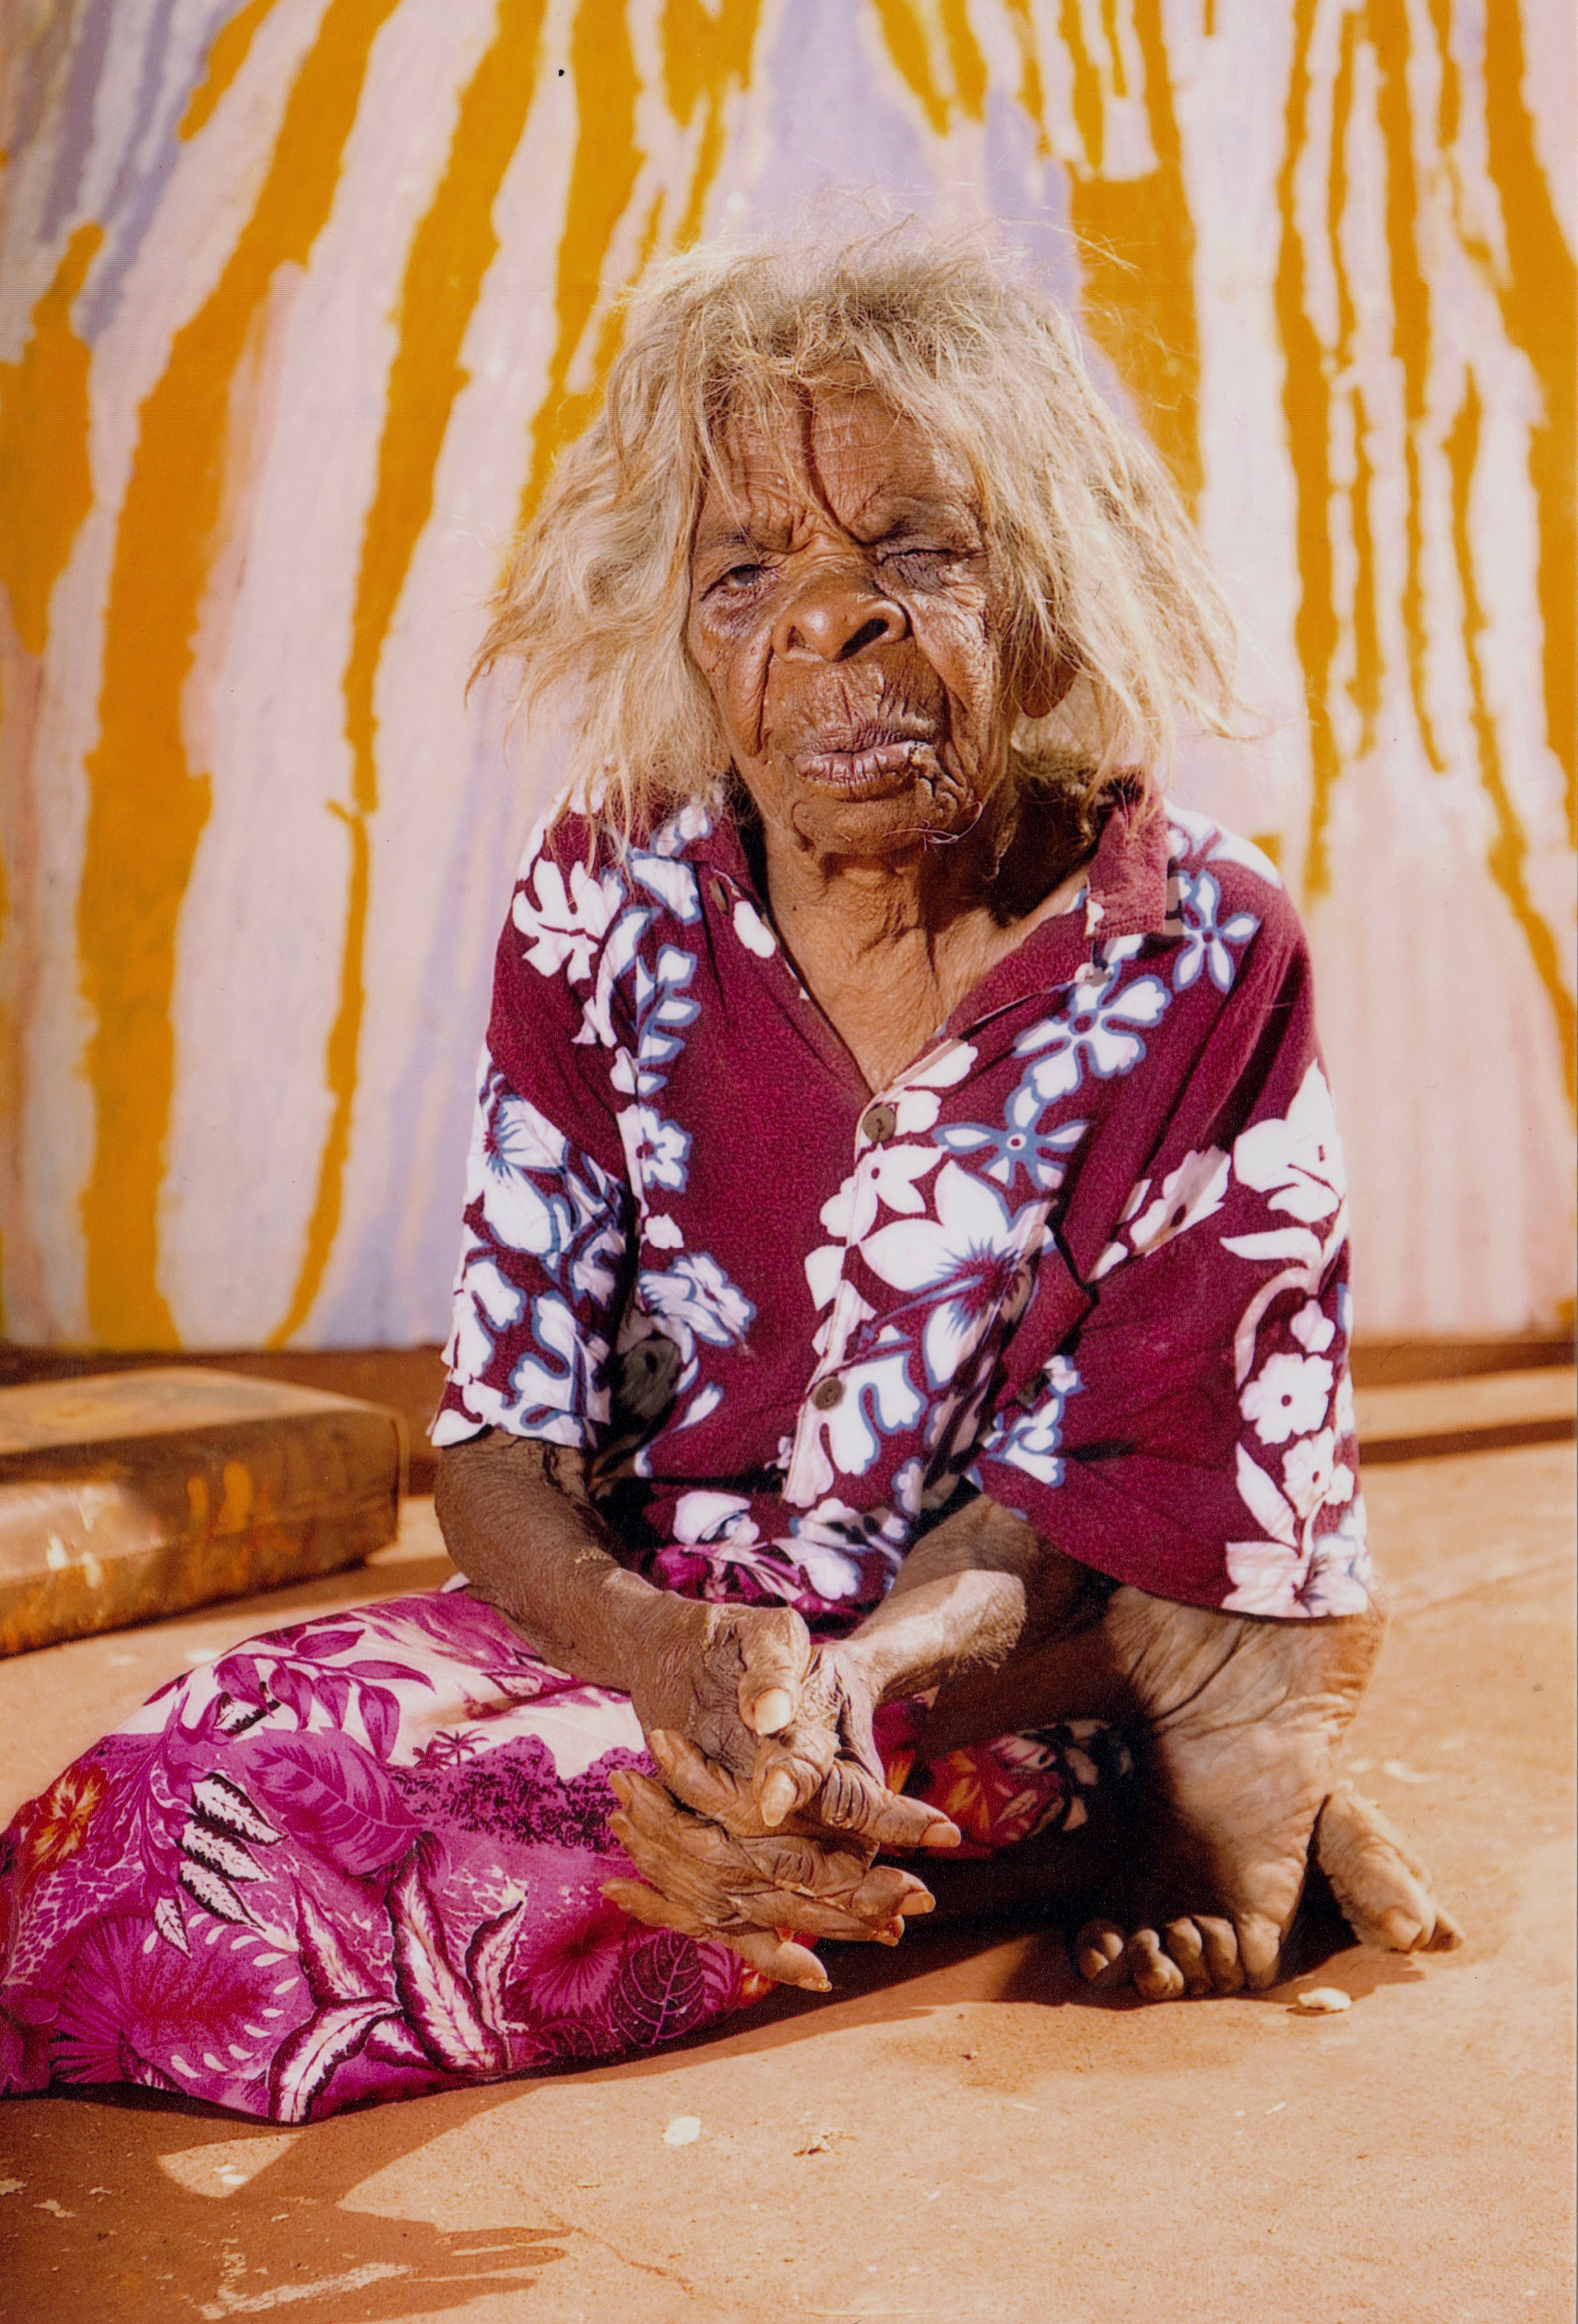 Western desert artist leaves behind record of women's ceremony